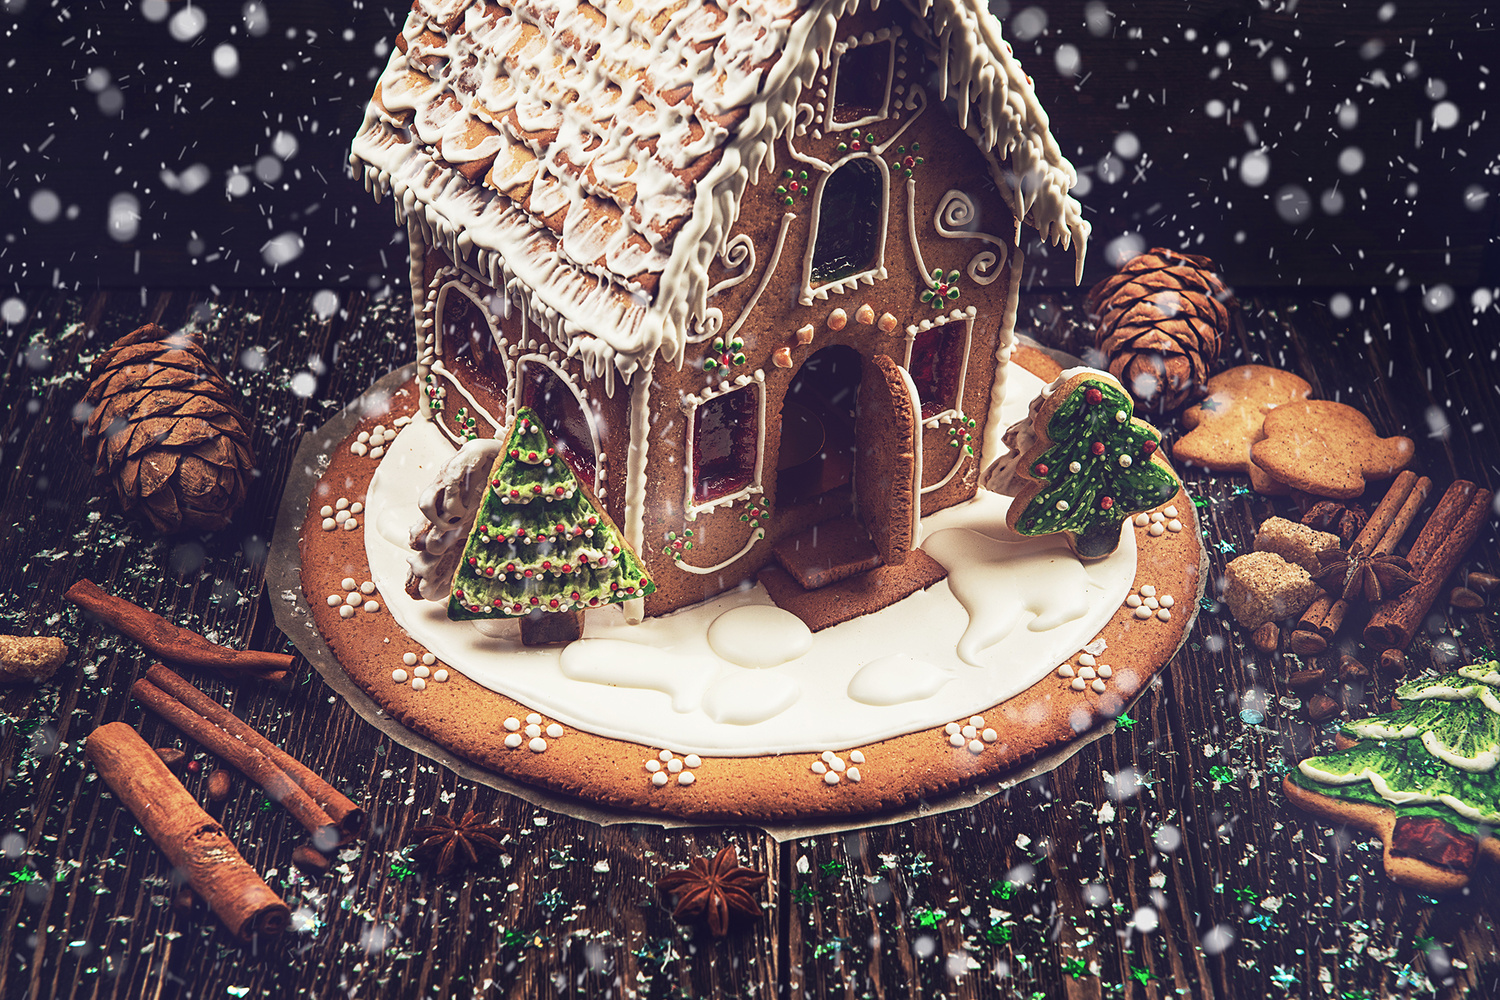 Gingerbread house by Ruslan Olinchuk